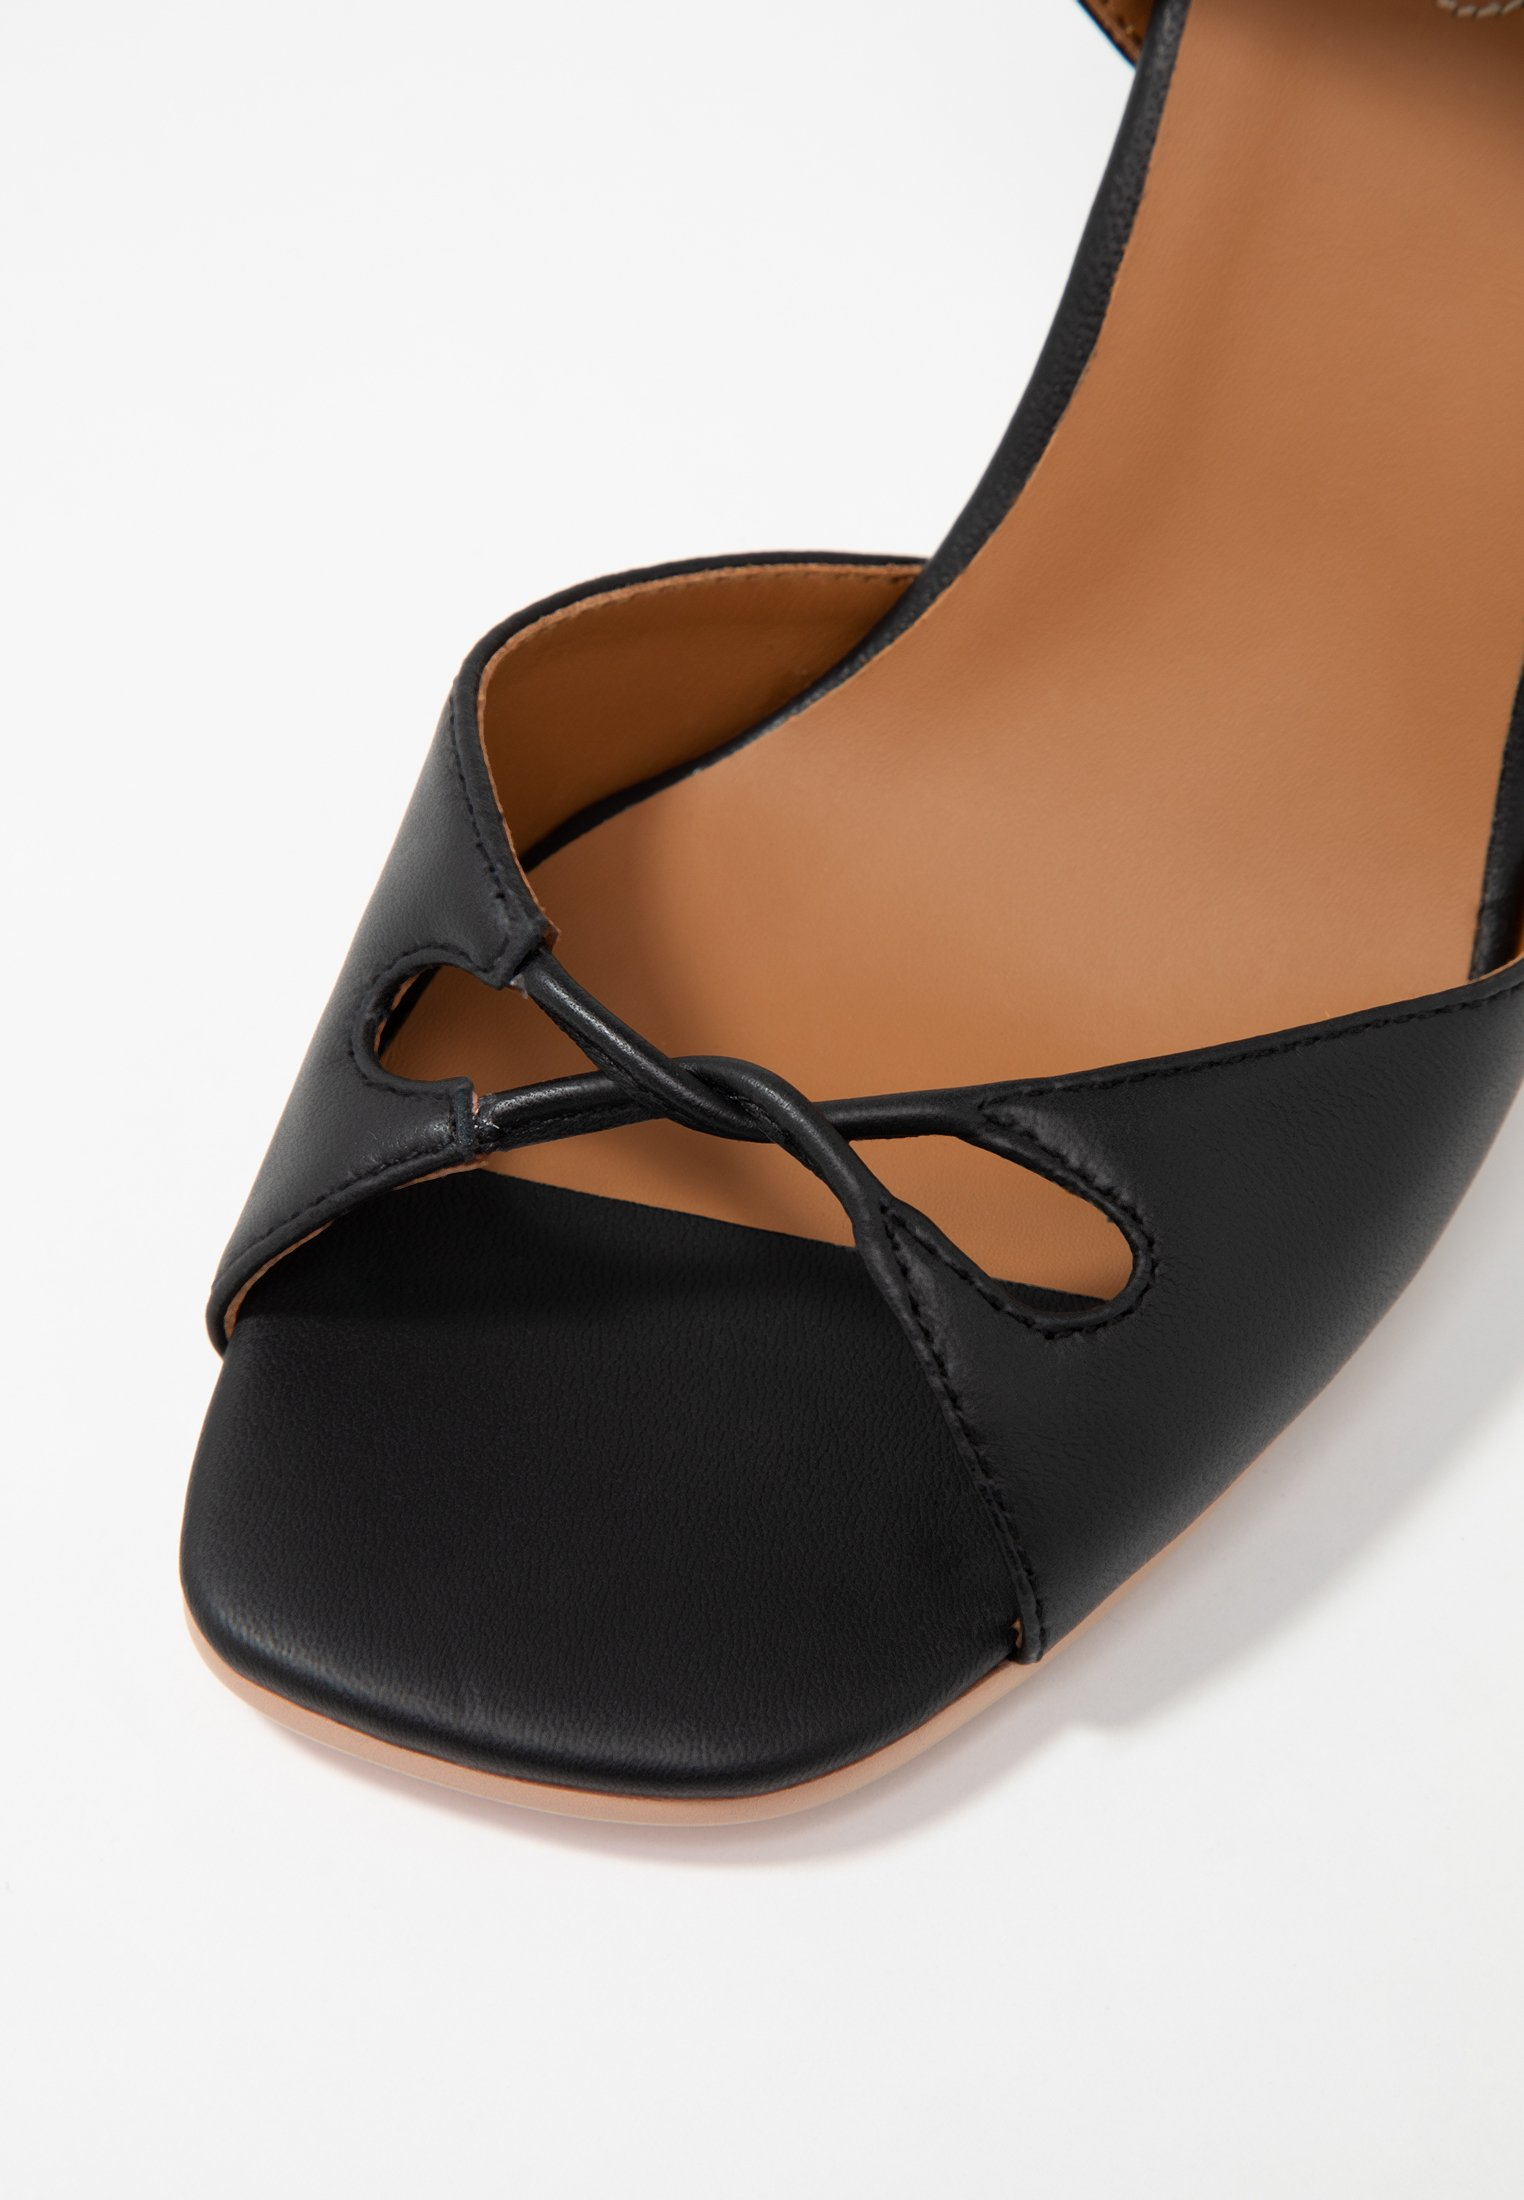 by Chloé à See talons nero Sandales hauts OnXP80wk